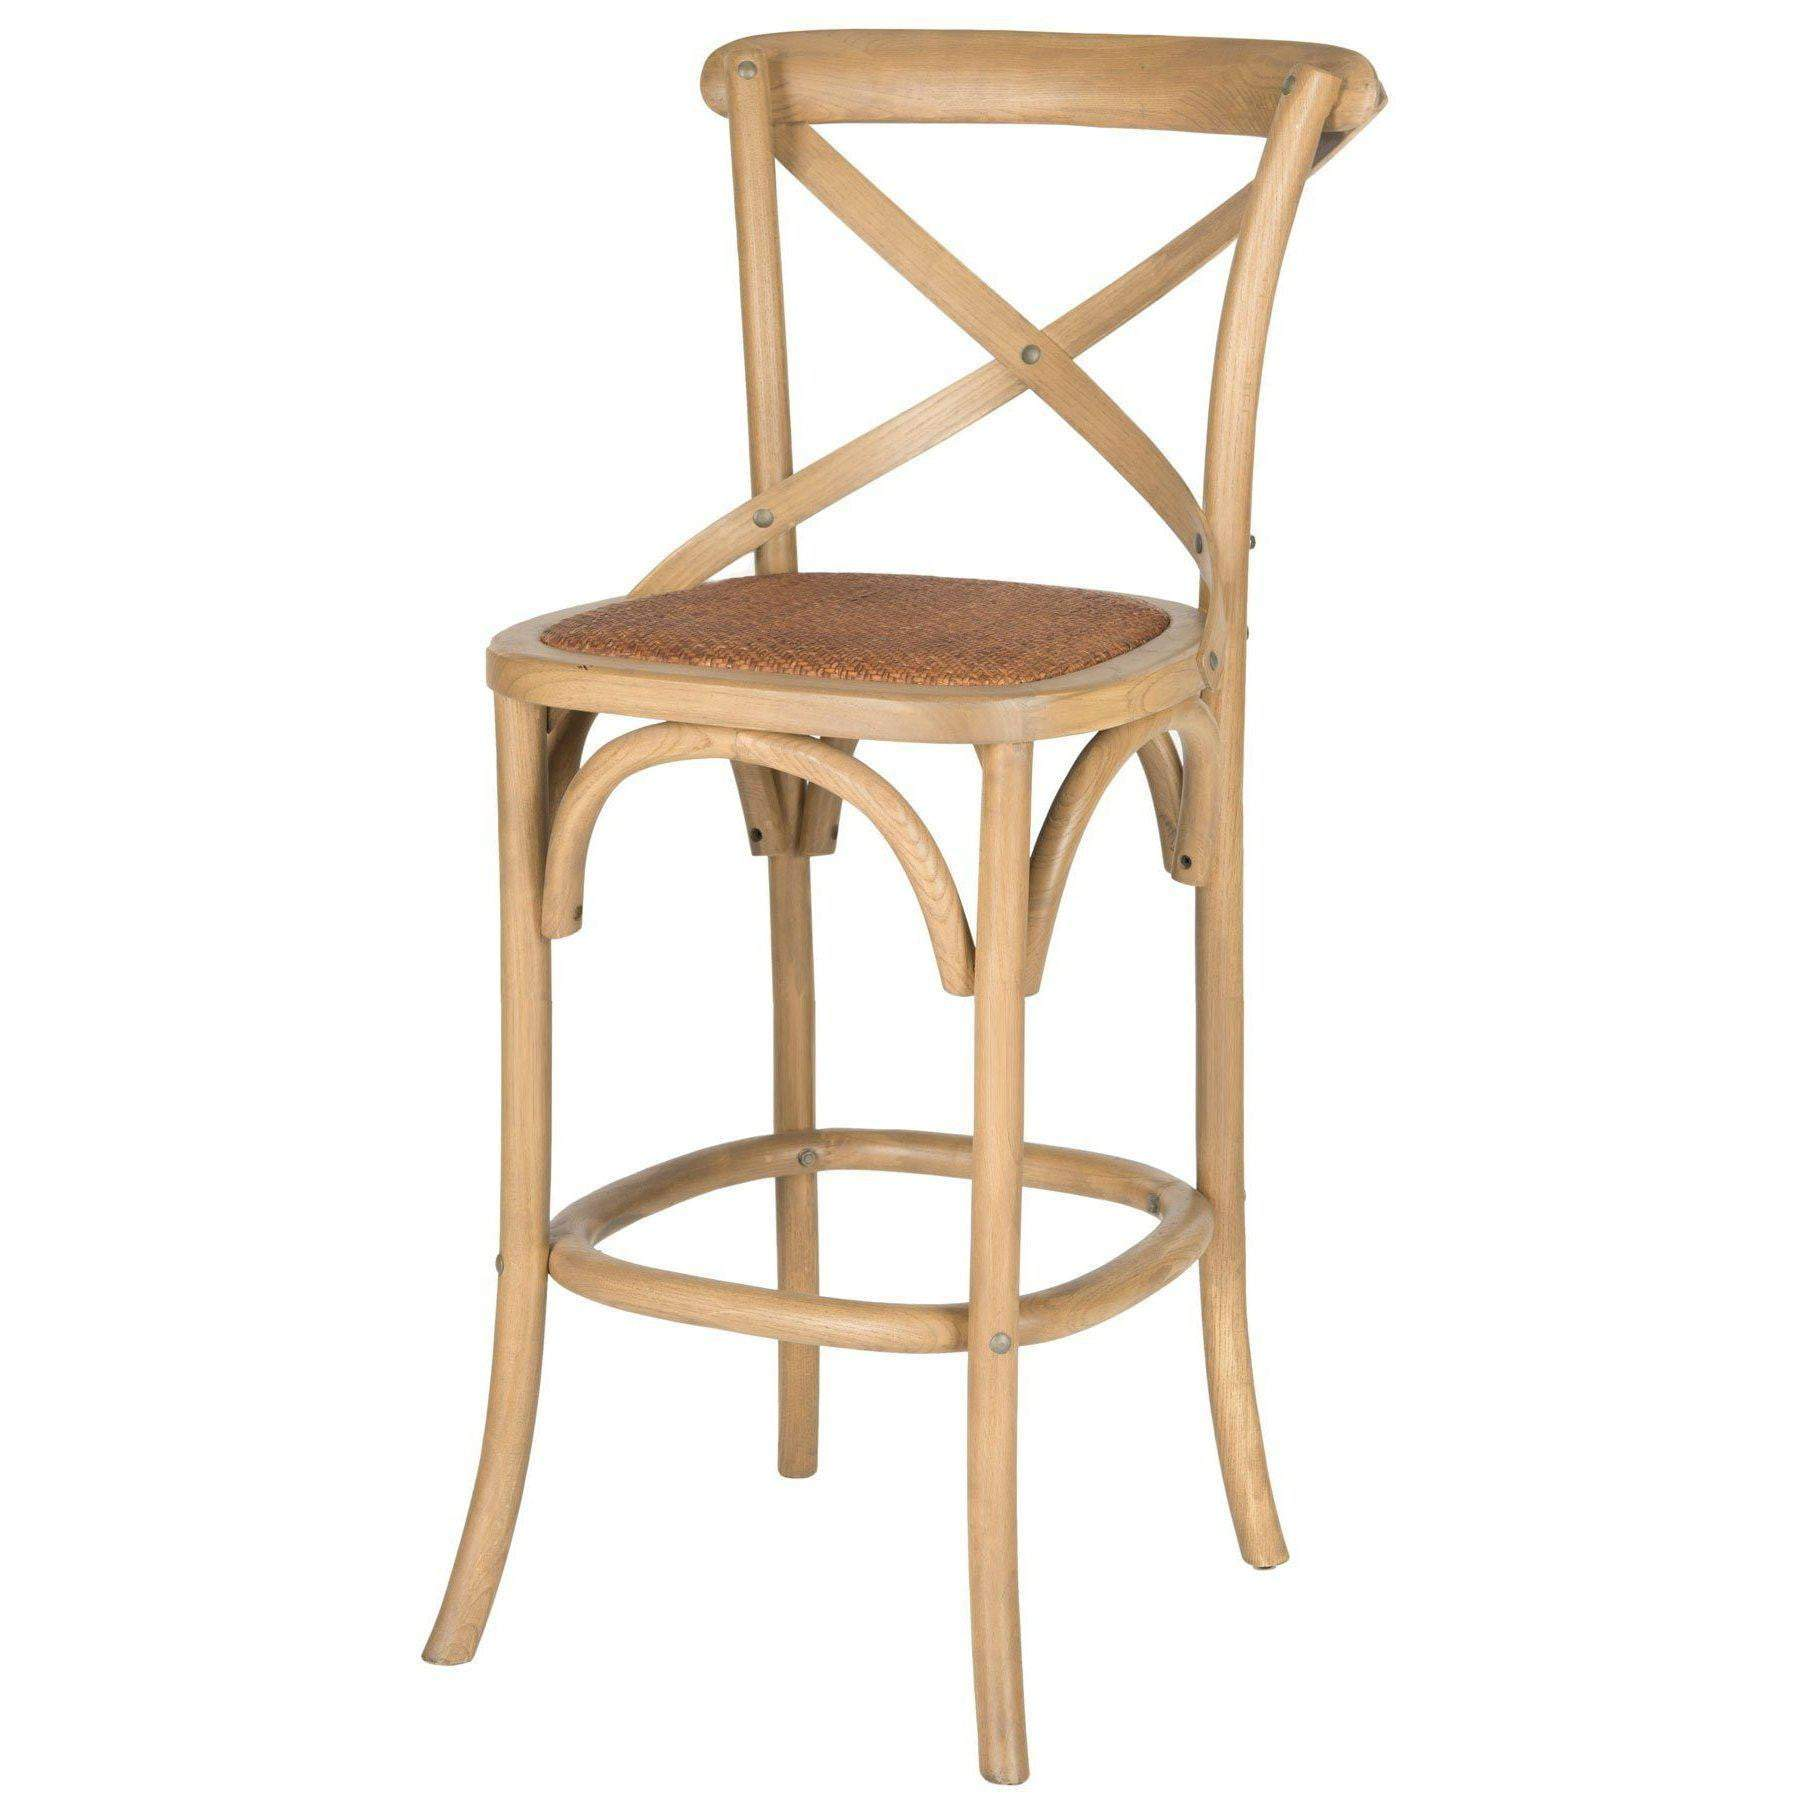 Eleanor X Back Bar Stool (Weathered Oak)